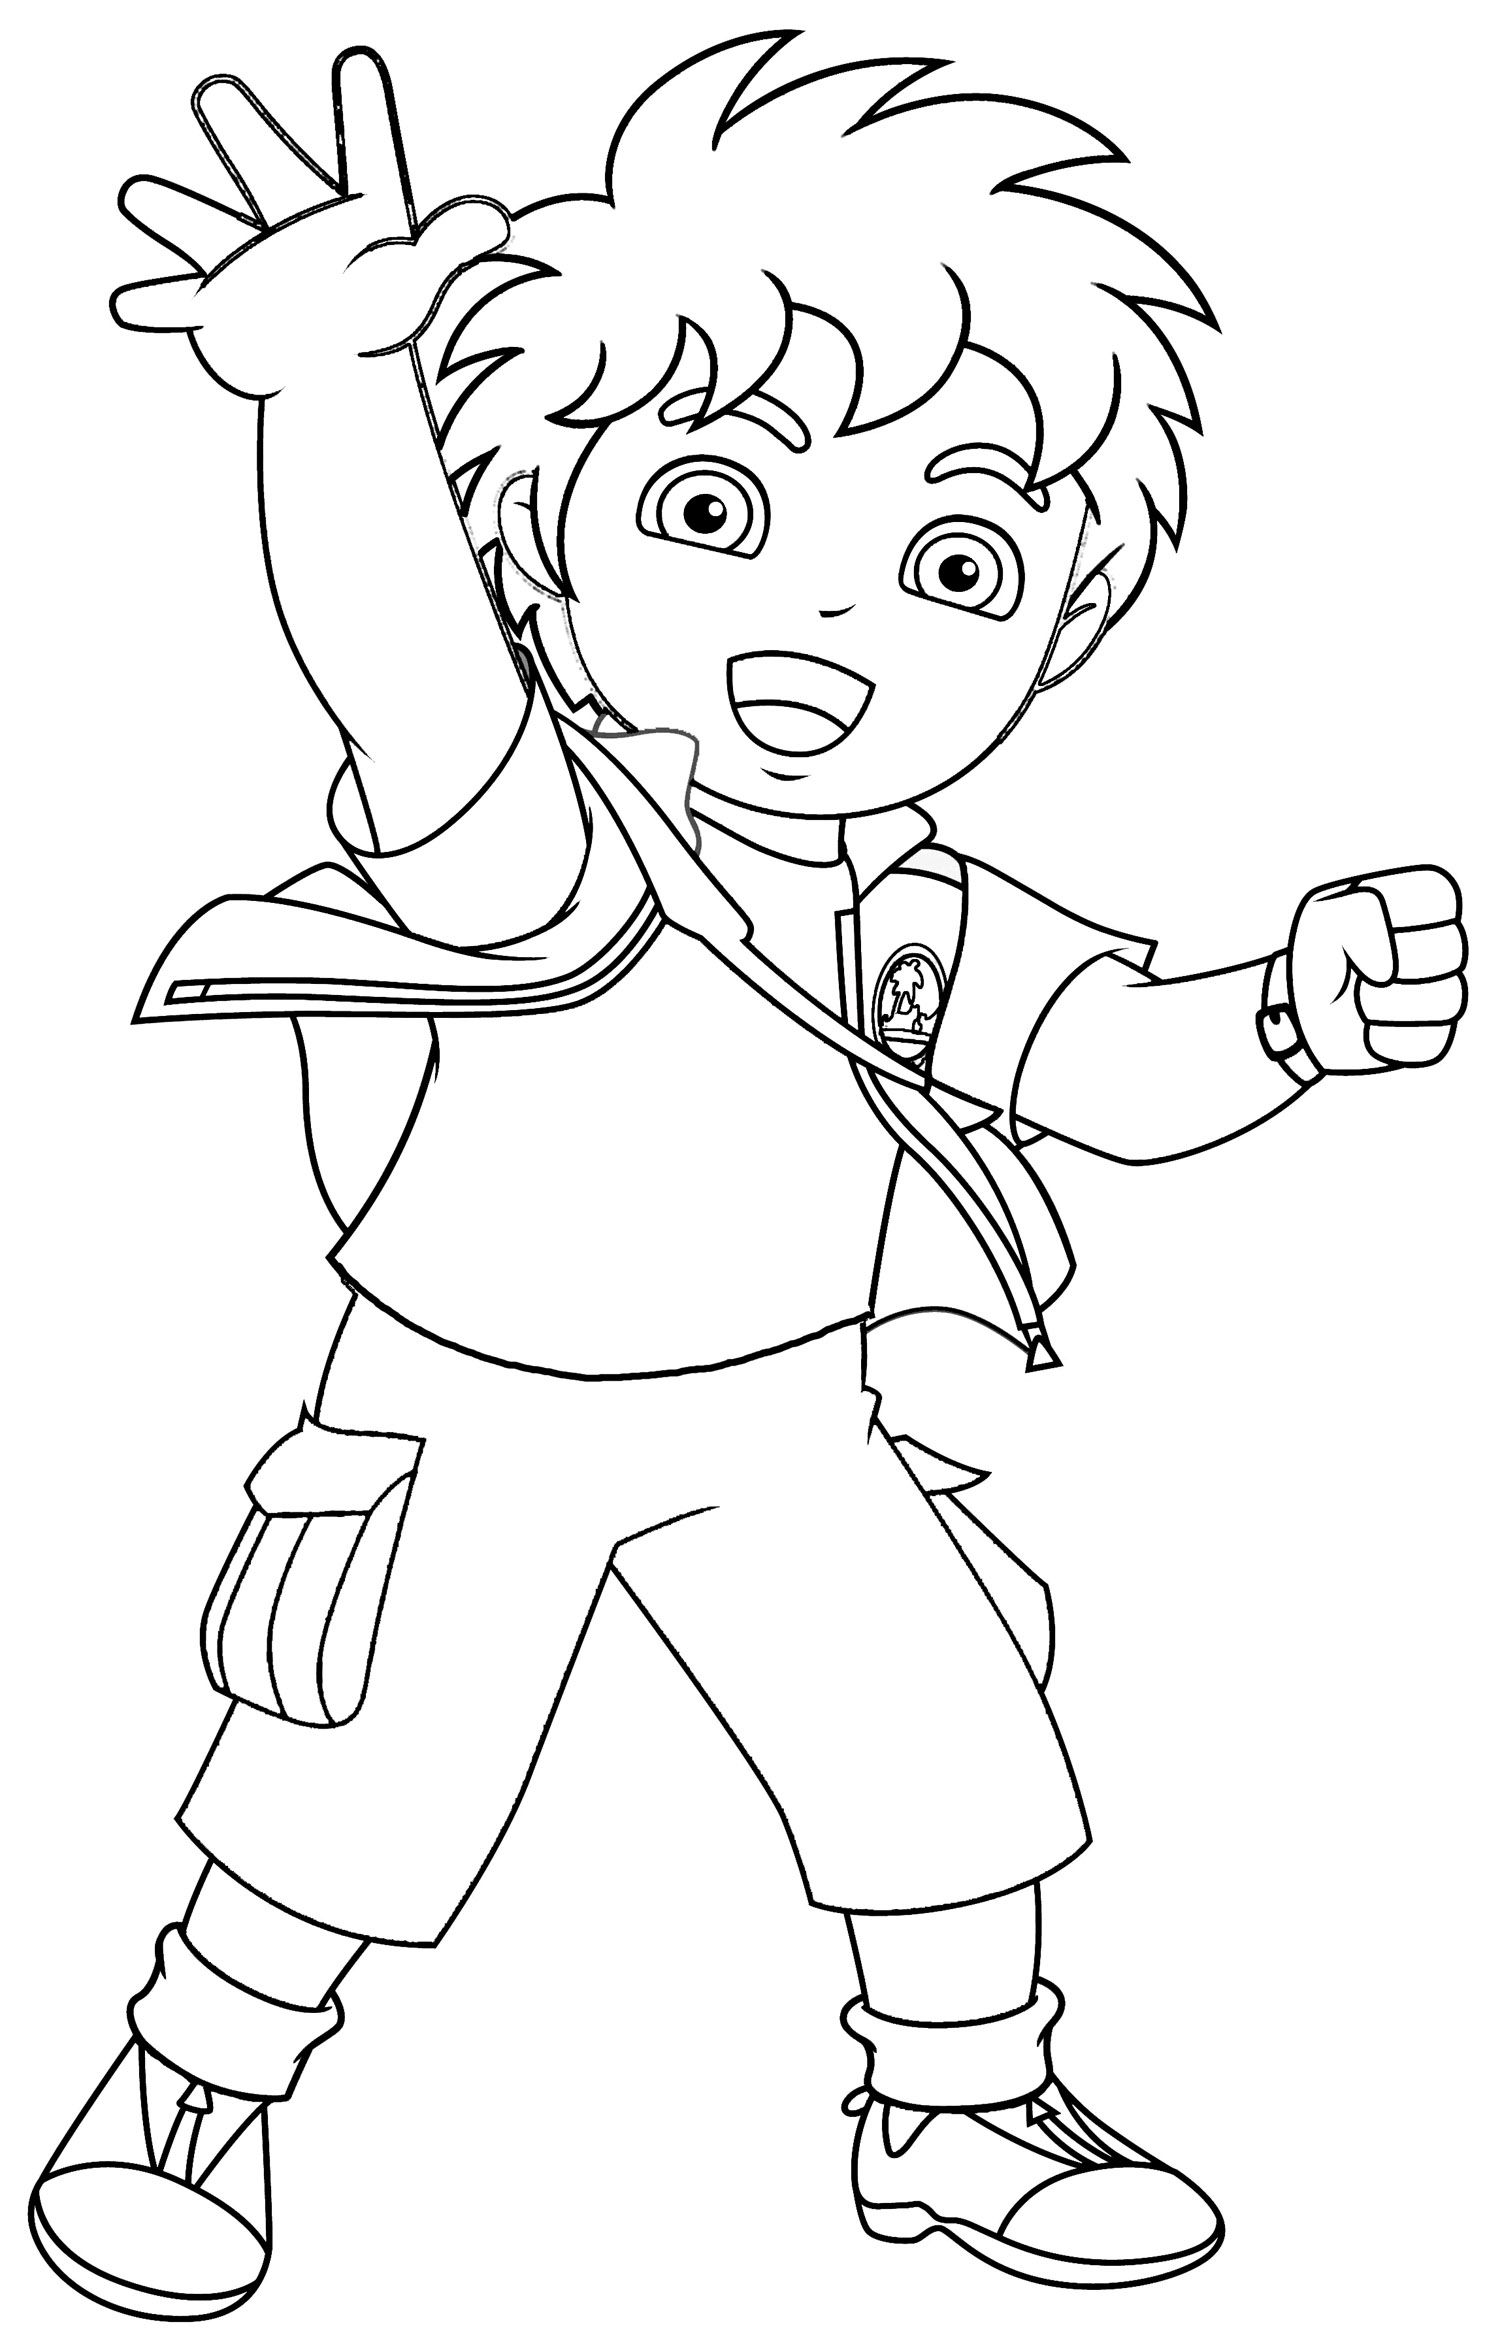 cool children pictures to color special picture colouring pages - Children Coloring Pictures